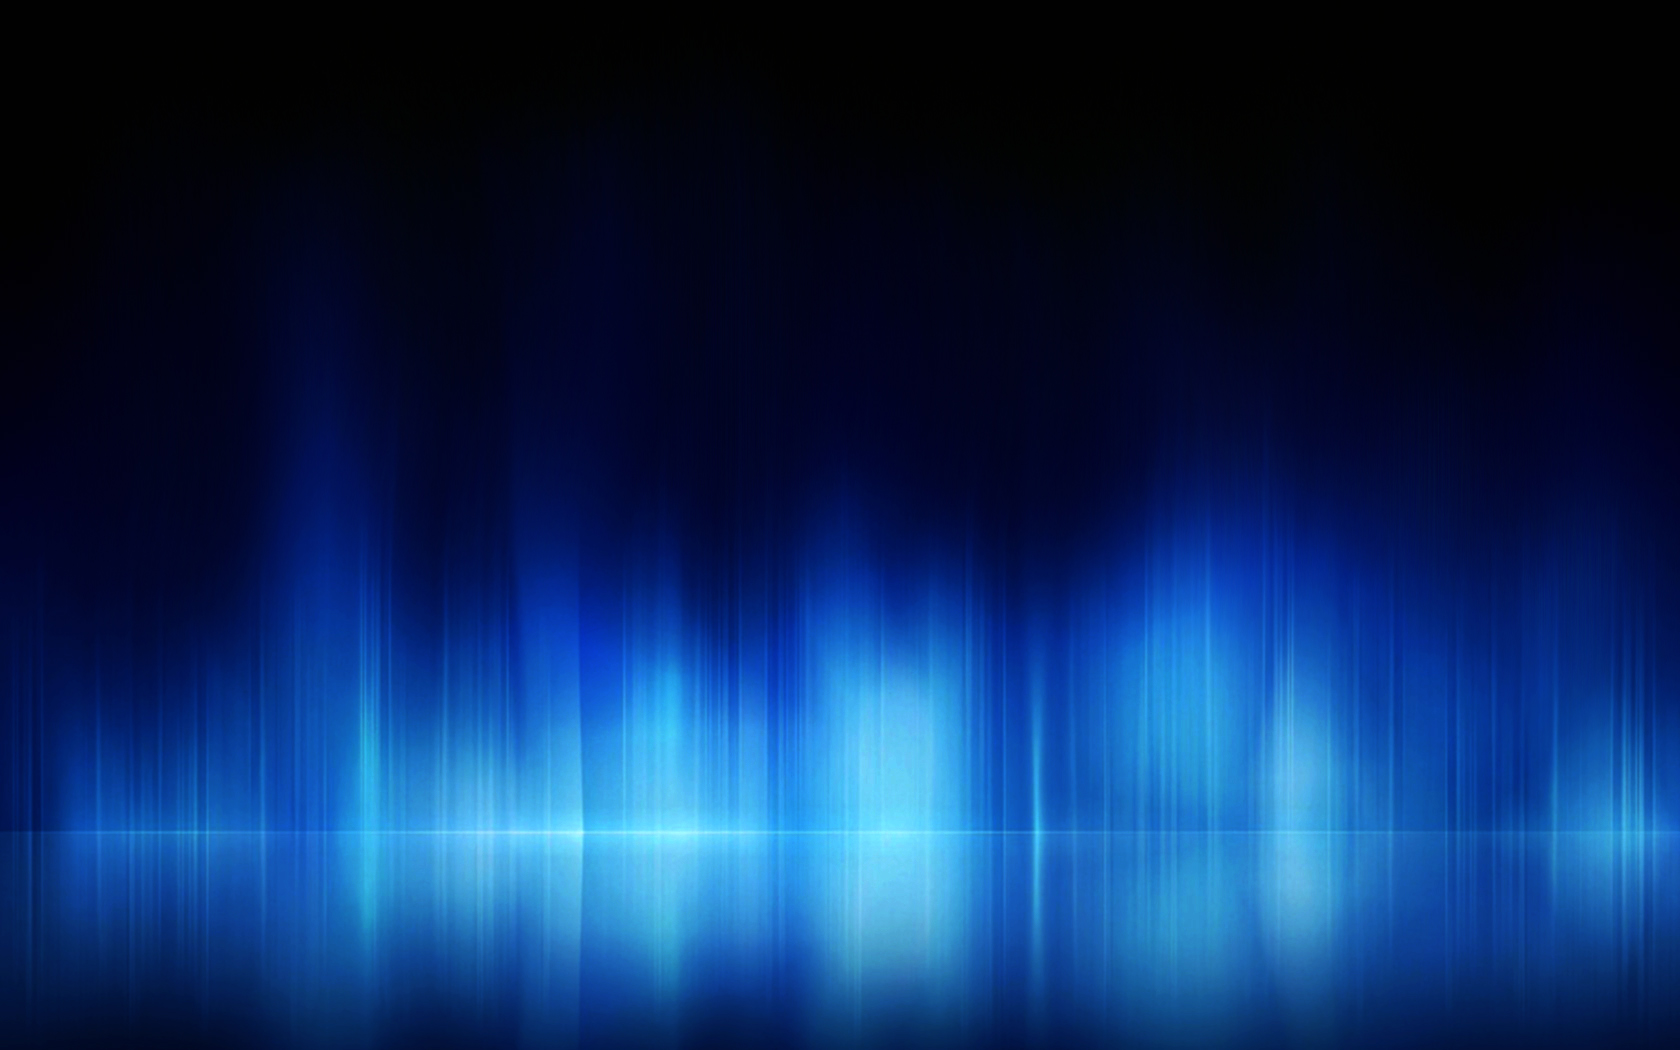 Free Dark Blue Abstract Background for Powerpoint Slides